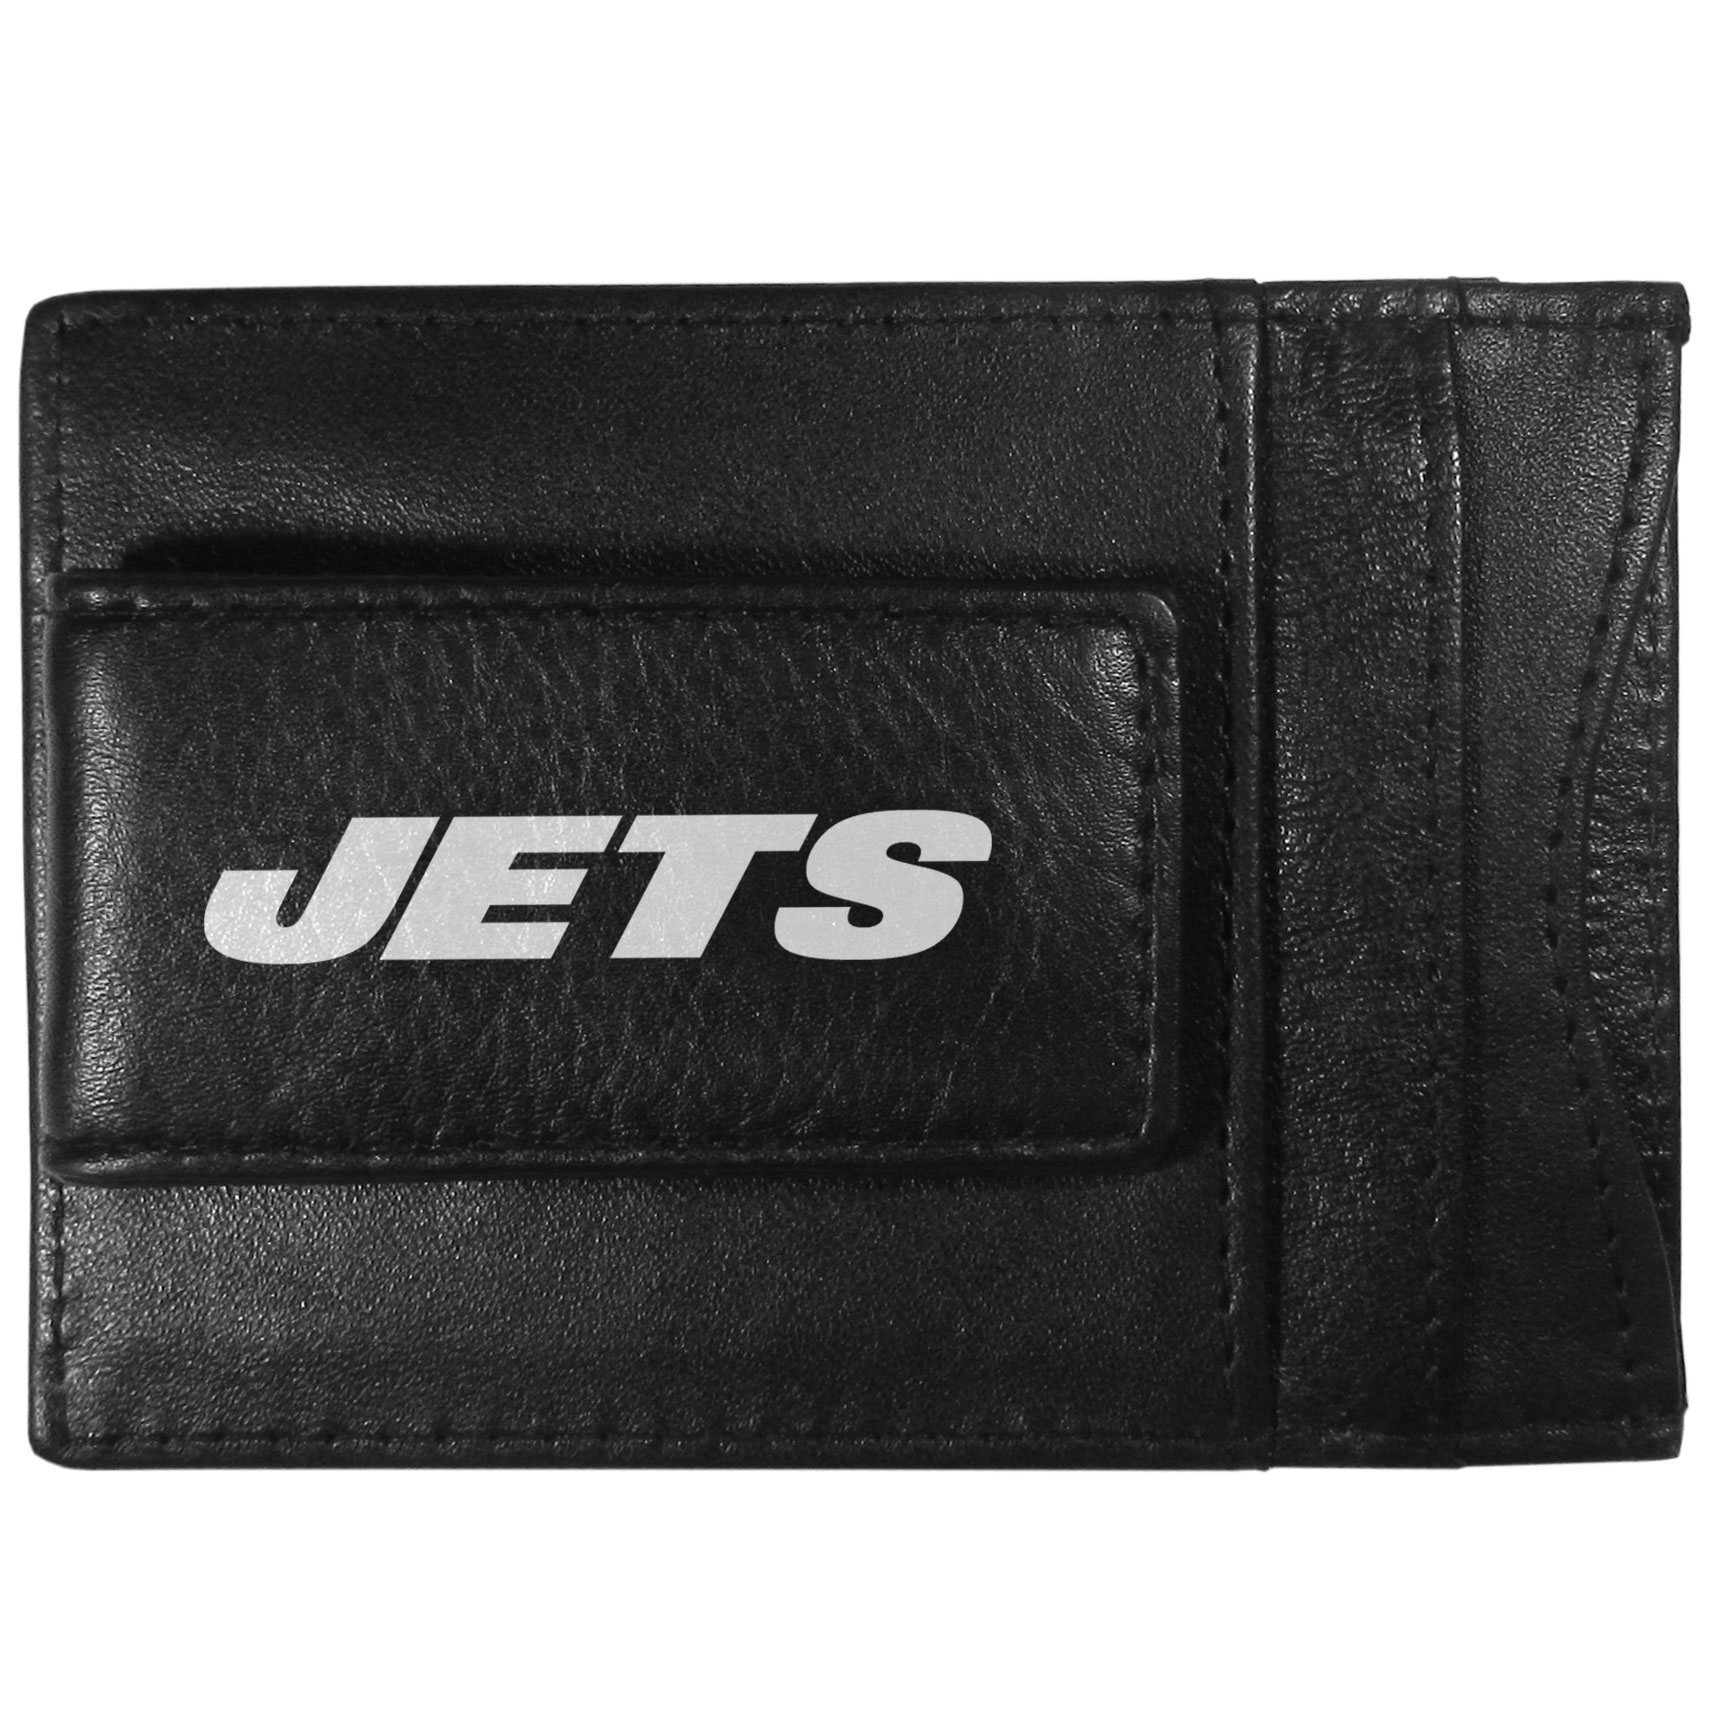 New York Jets Logo Leather Cash and Cardholder - This super slim leather wallet lets you have all the benefits of a money clip while keeping the organization of a wallet. On one side of this front pocket wallet there is a strong, magnetic money clip to keep your cash easily accessible and the?New York Jets team logo on the front. The versatile men's accessory is a perfect addition to your fan apparel.